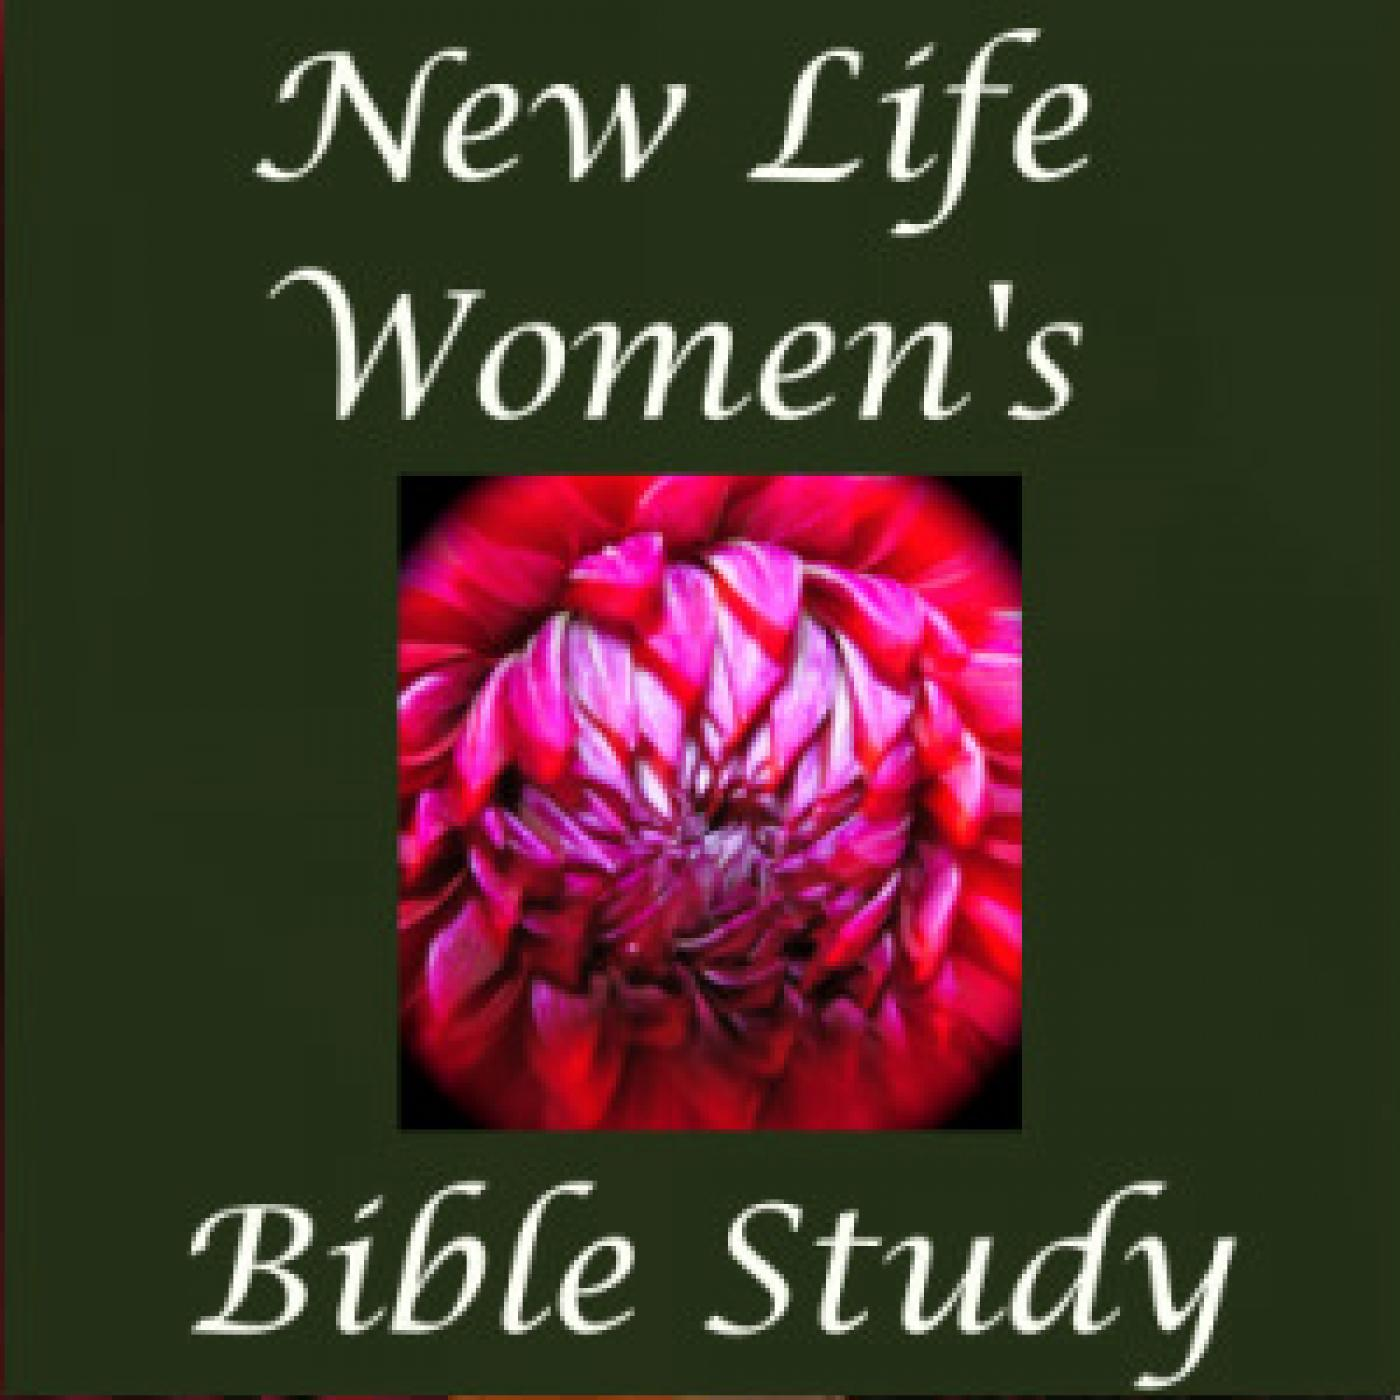 New Life Philadelphia Women's Bible Study